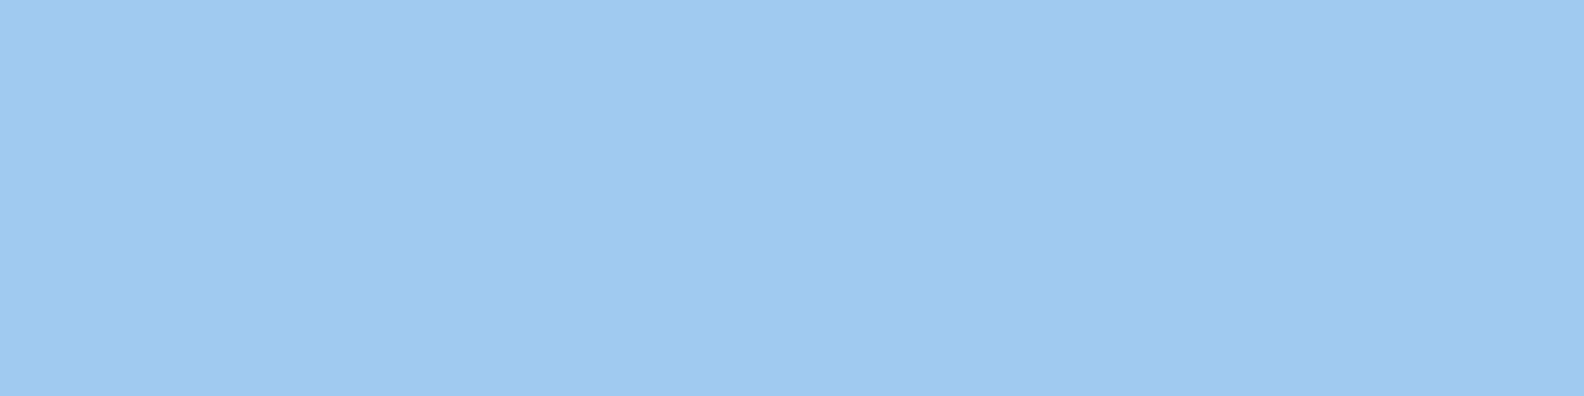 1584x396 Baby Blue Eyes Solid Color Background